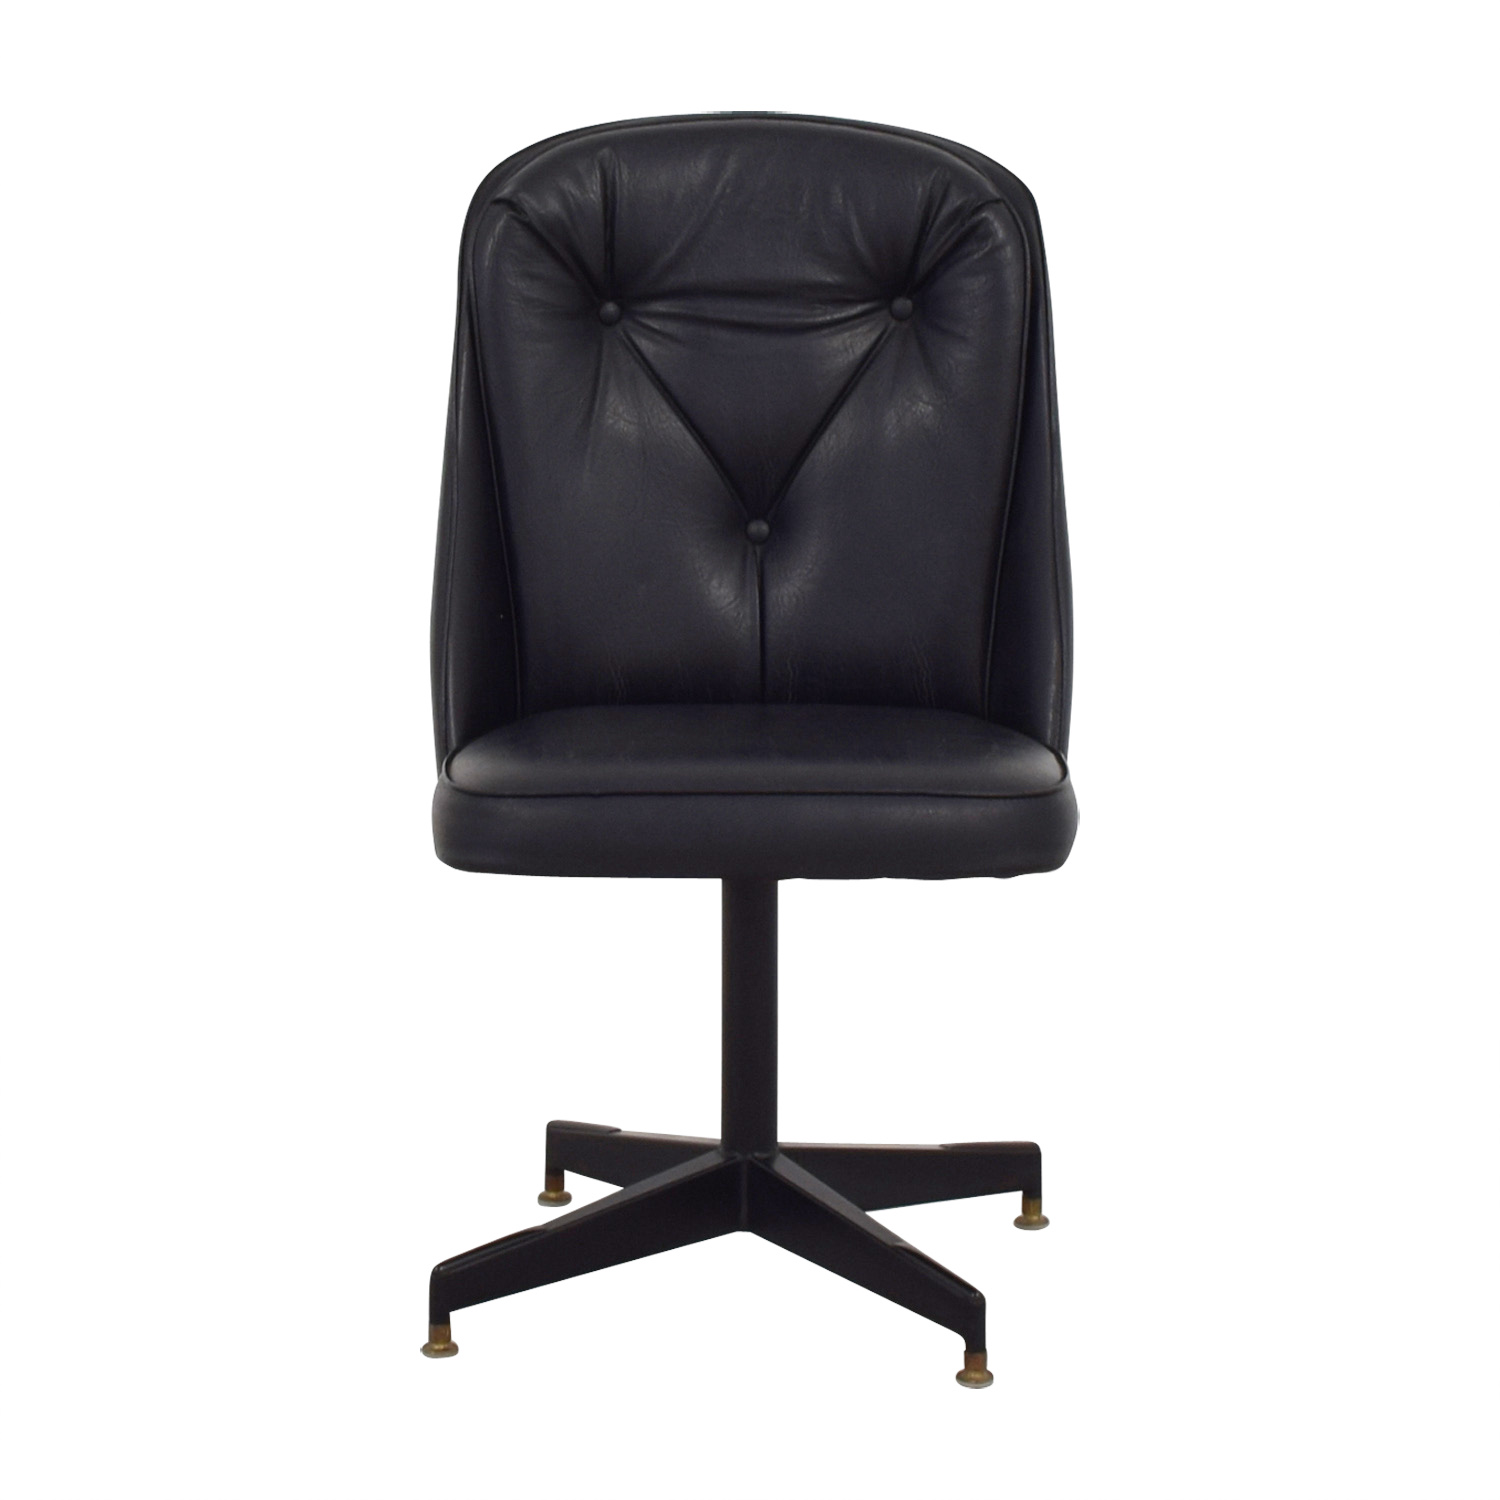 Black Leather Swivel Office Desk Chair Used ...